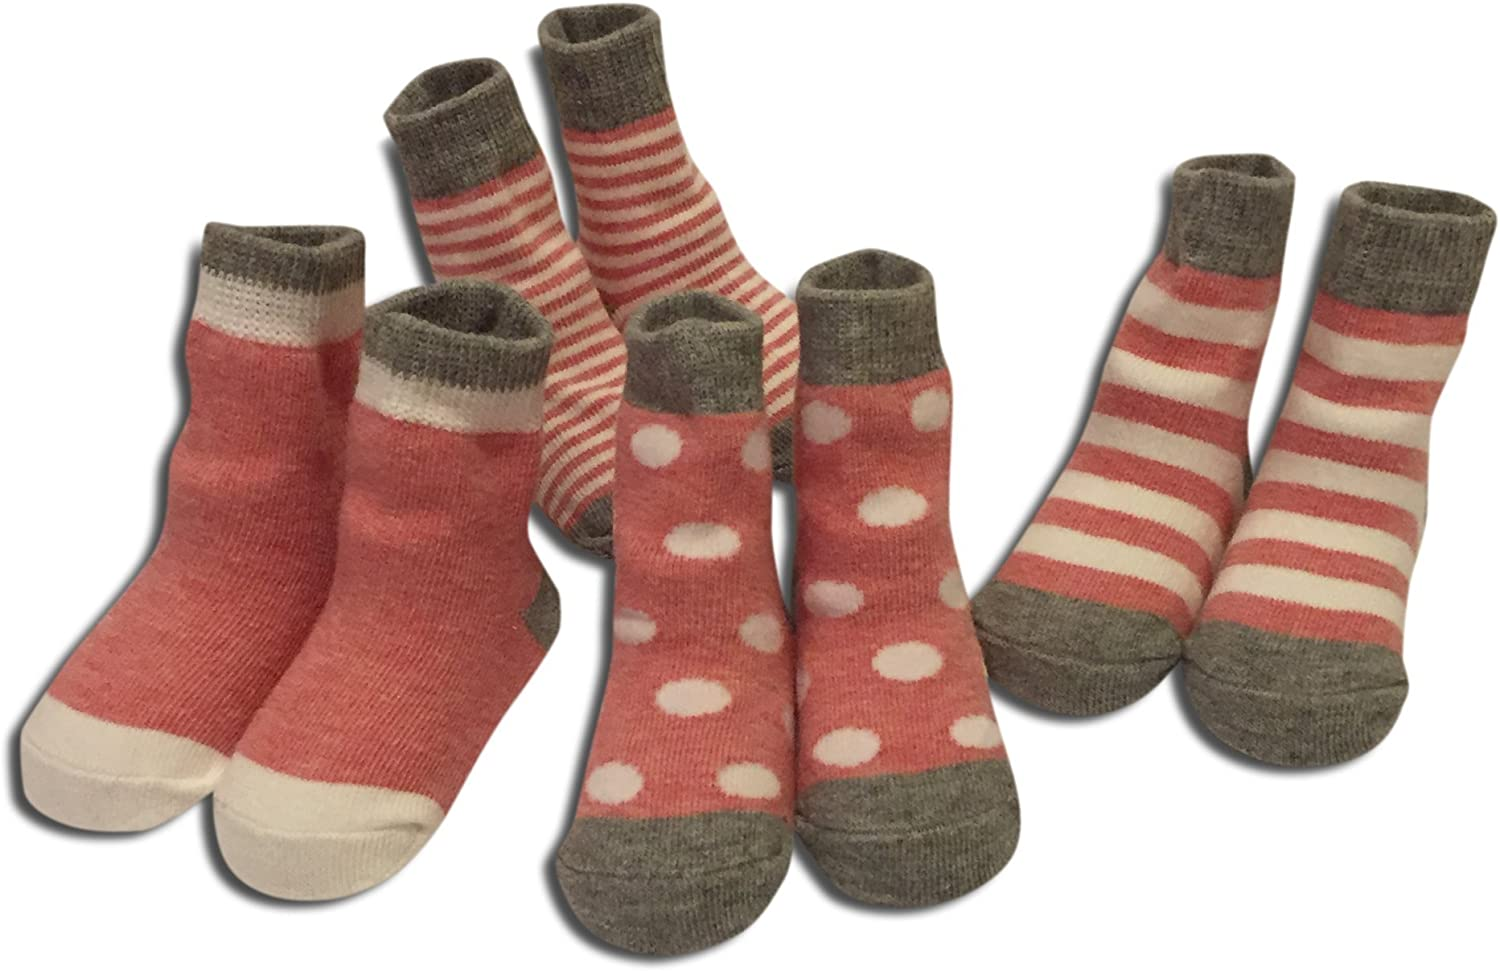 Wits + Beaux Premium 4 pack Baby Girl Red Socks ages 6-24 months Pink Gray White